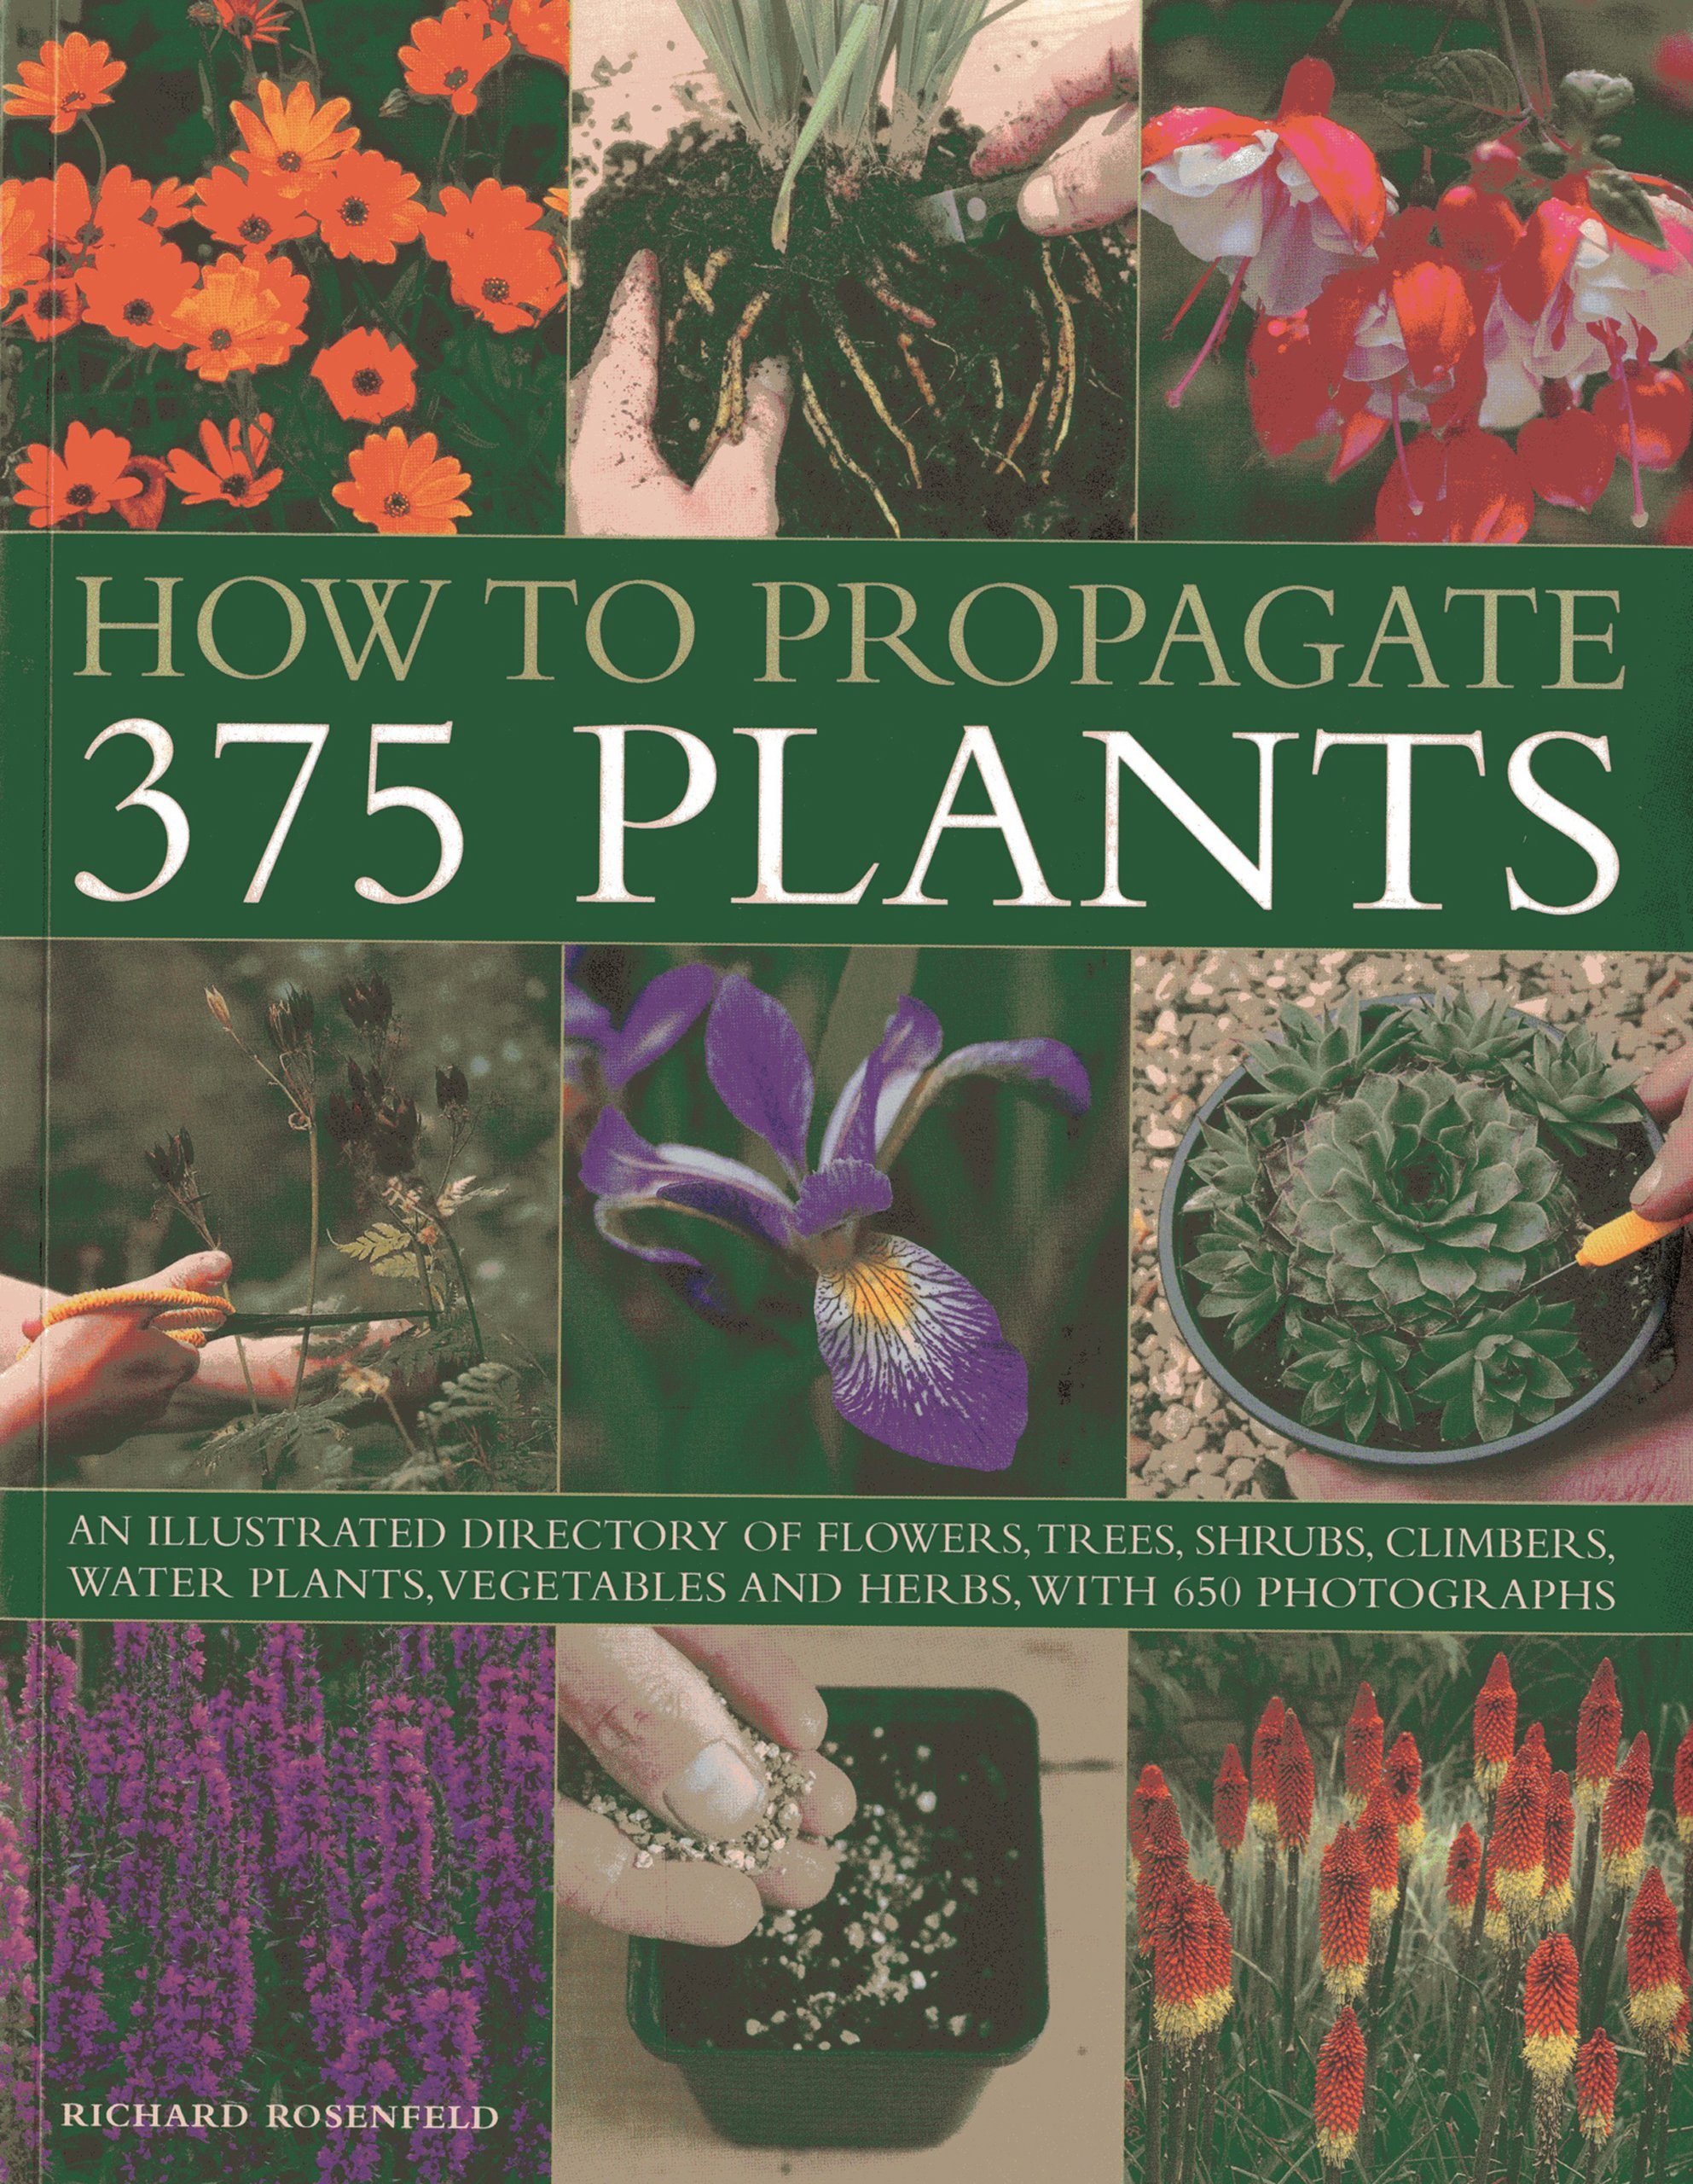 How to Propagate 375 Plants: An illustrated directory of flowers, trees, shrubs, climbers, water plants, vegetables and herbs, with 650 photographs PDF